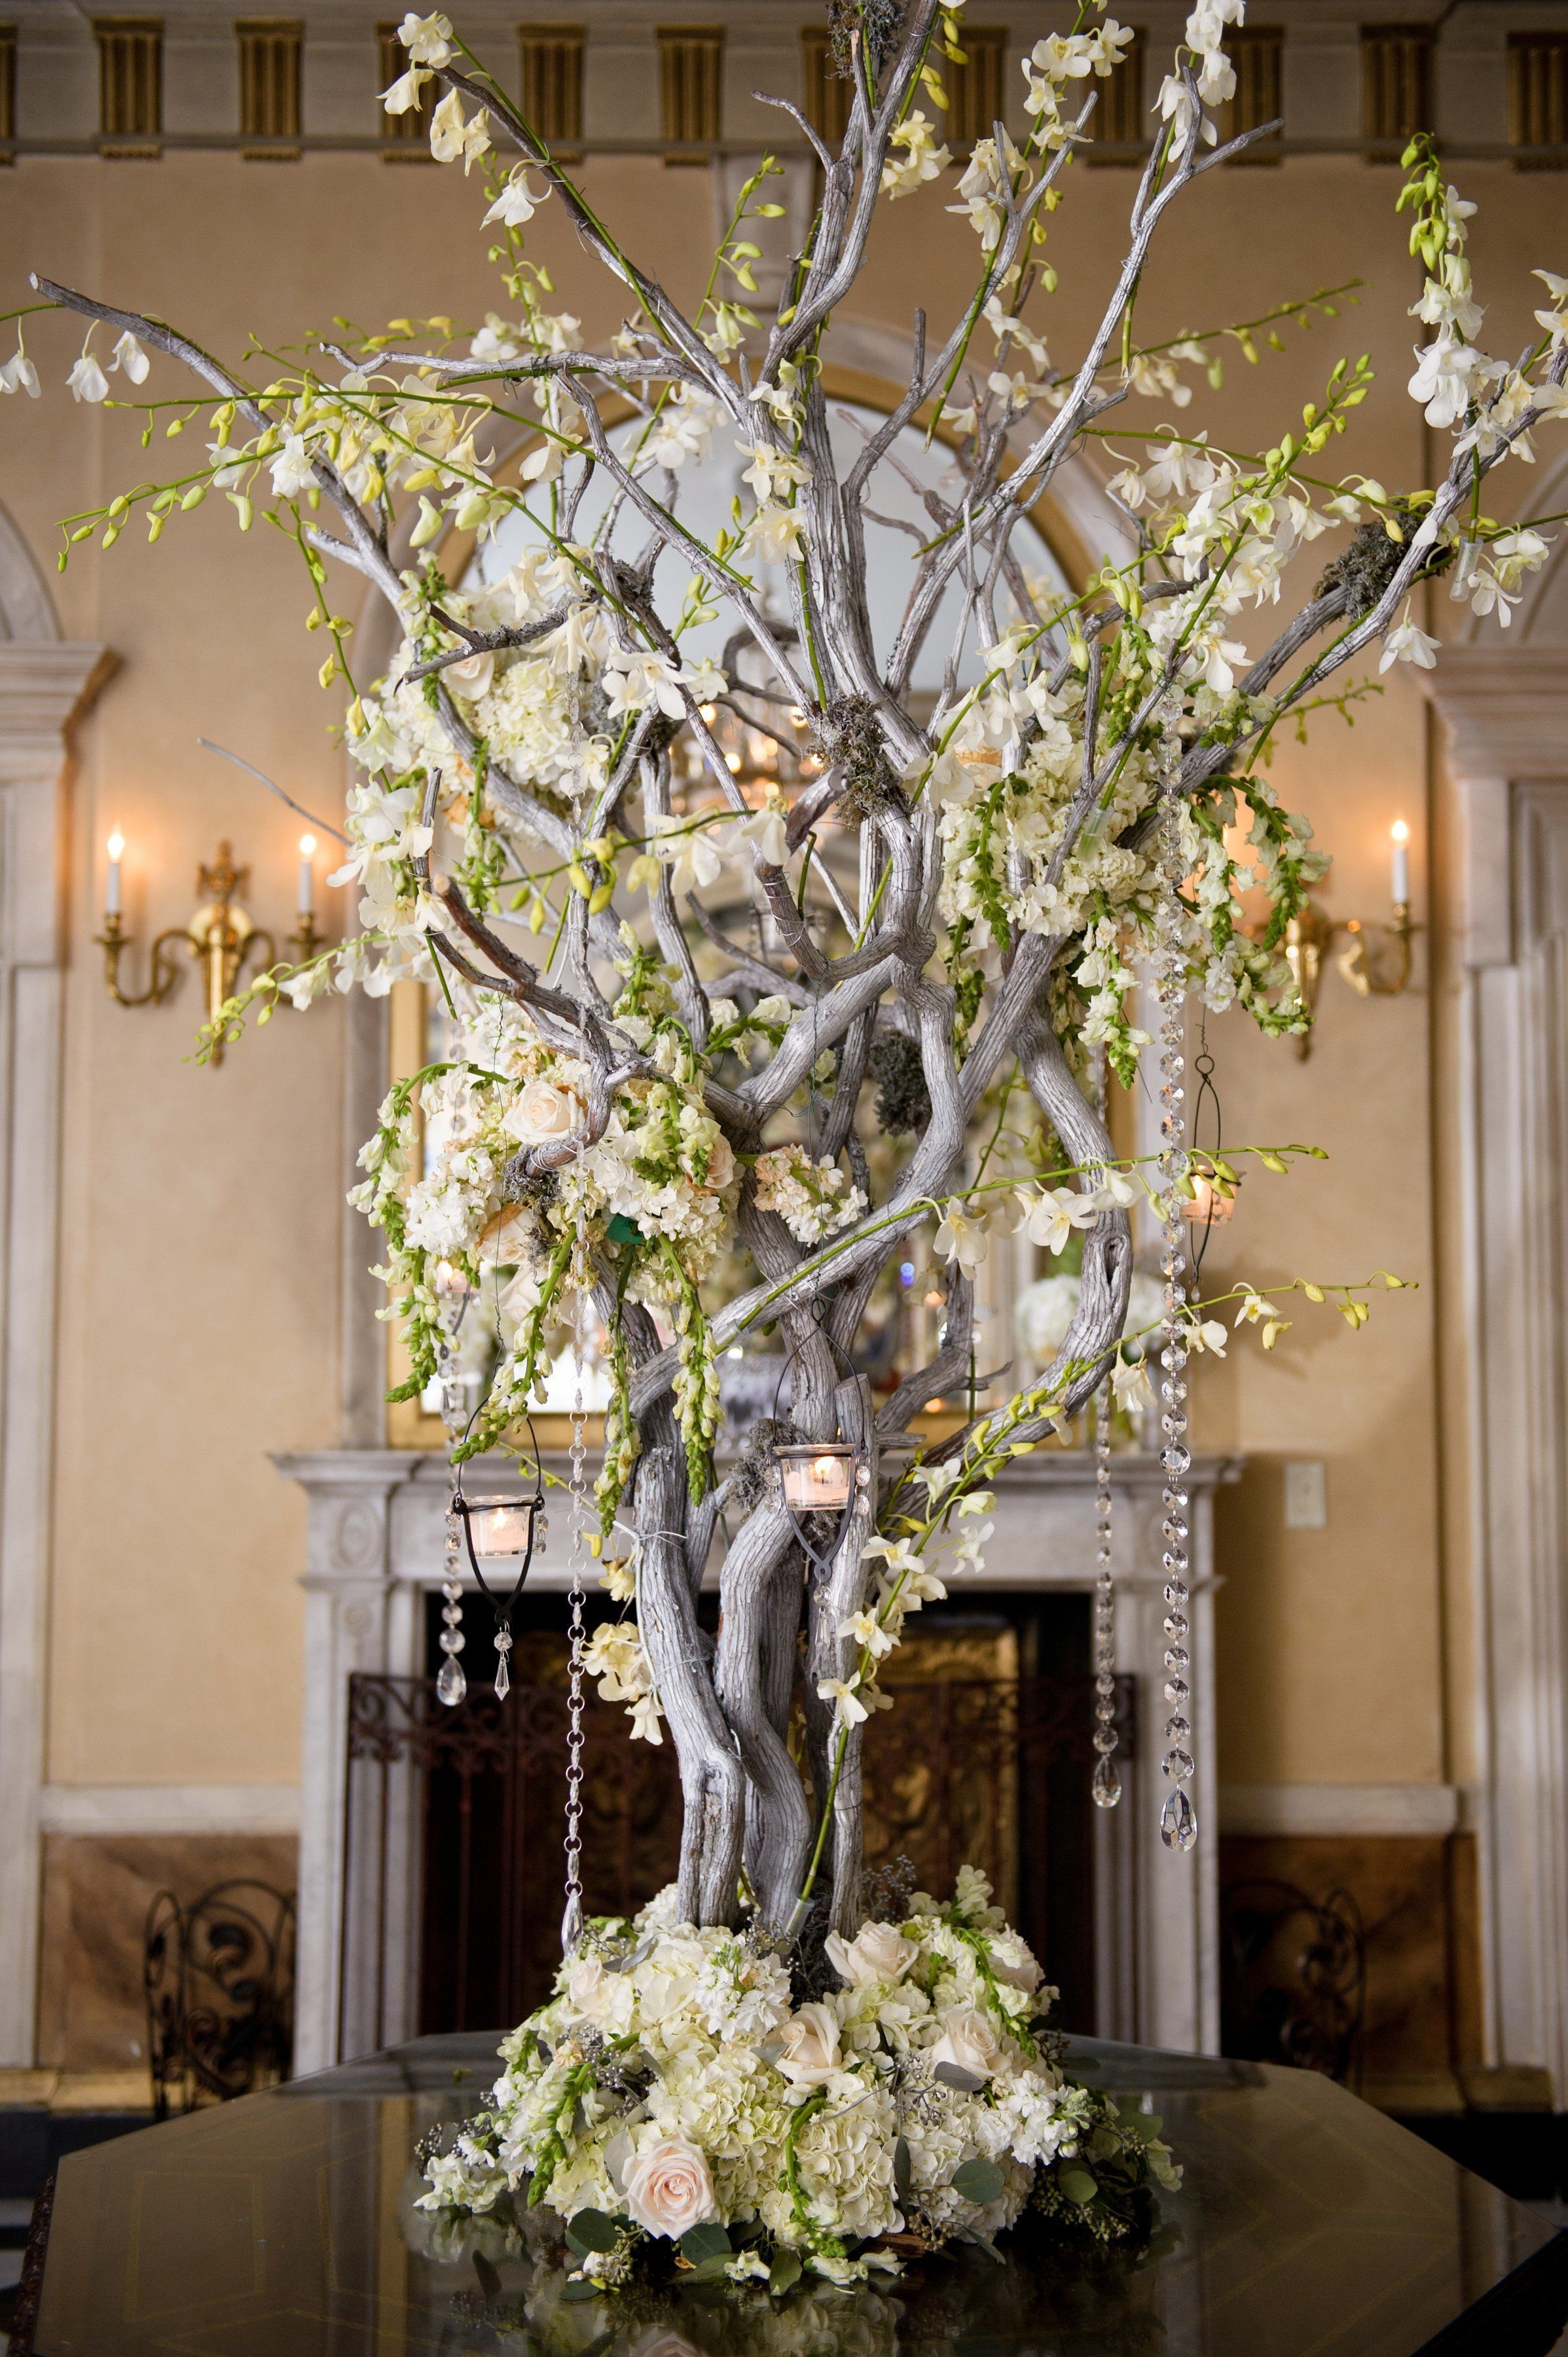 29 Fashionable Tall Vase Flower Arrangement Ideas 2021 free download tall vase flower arrangement ideas of decorative branches for weddings awesome tall vase centerpiece ideas throughout decorative branches for weddings best of a tall arrangement of manzanita